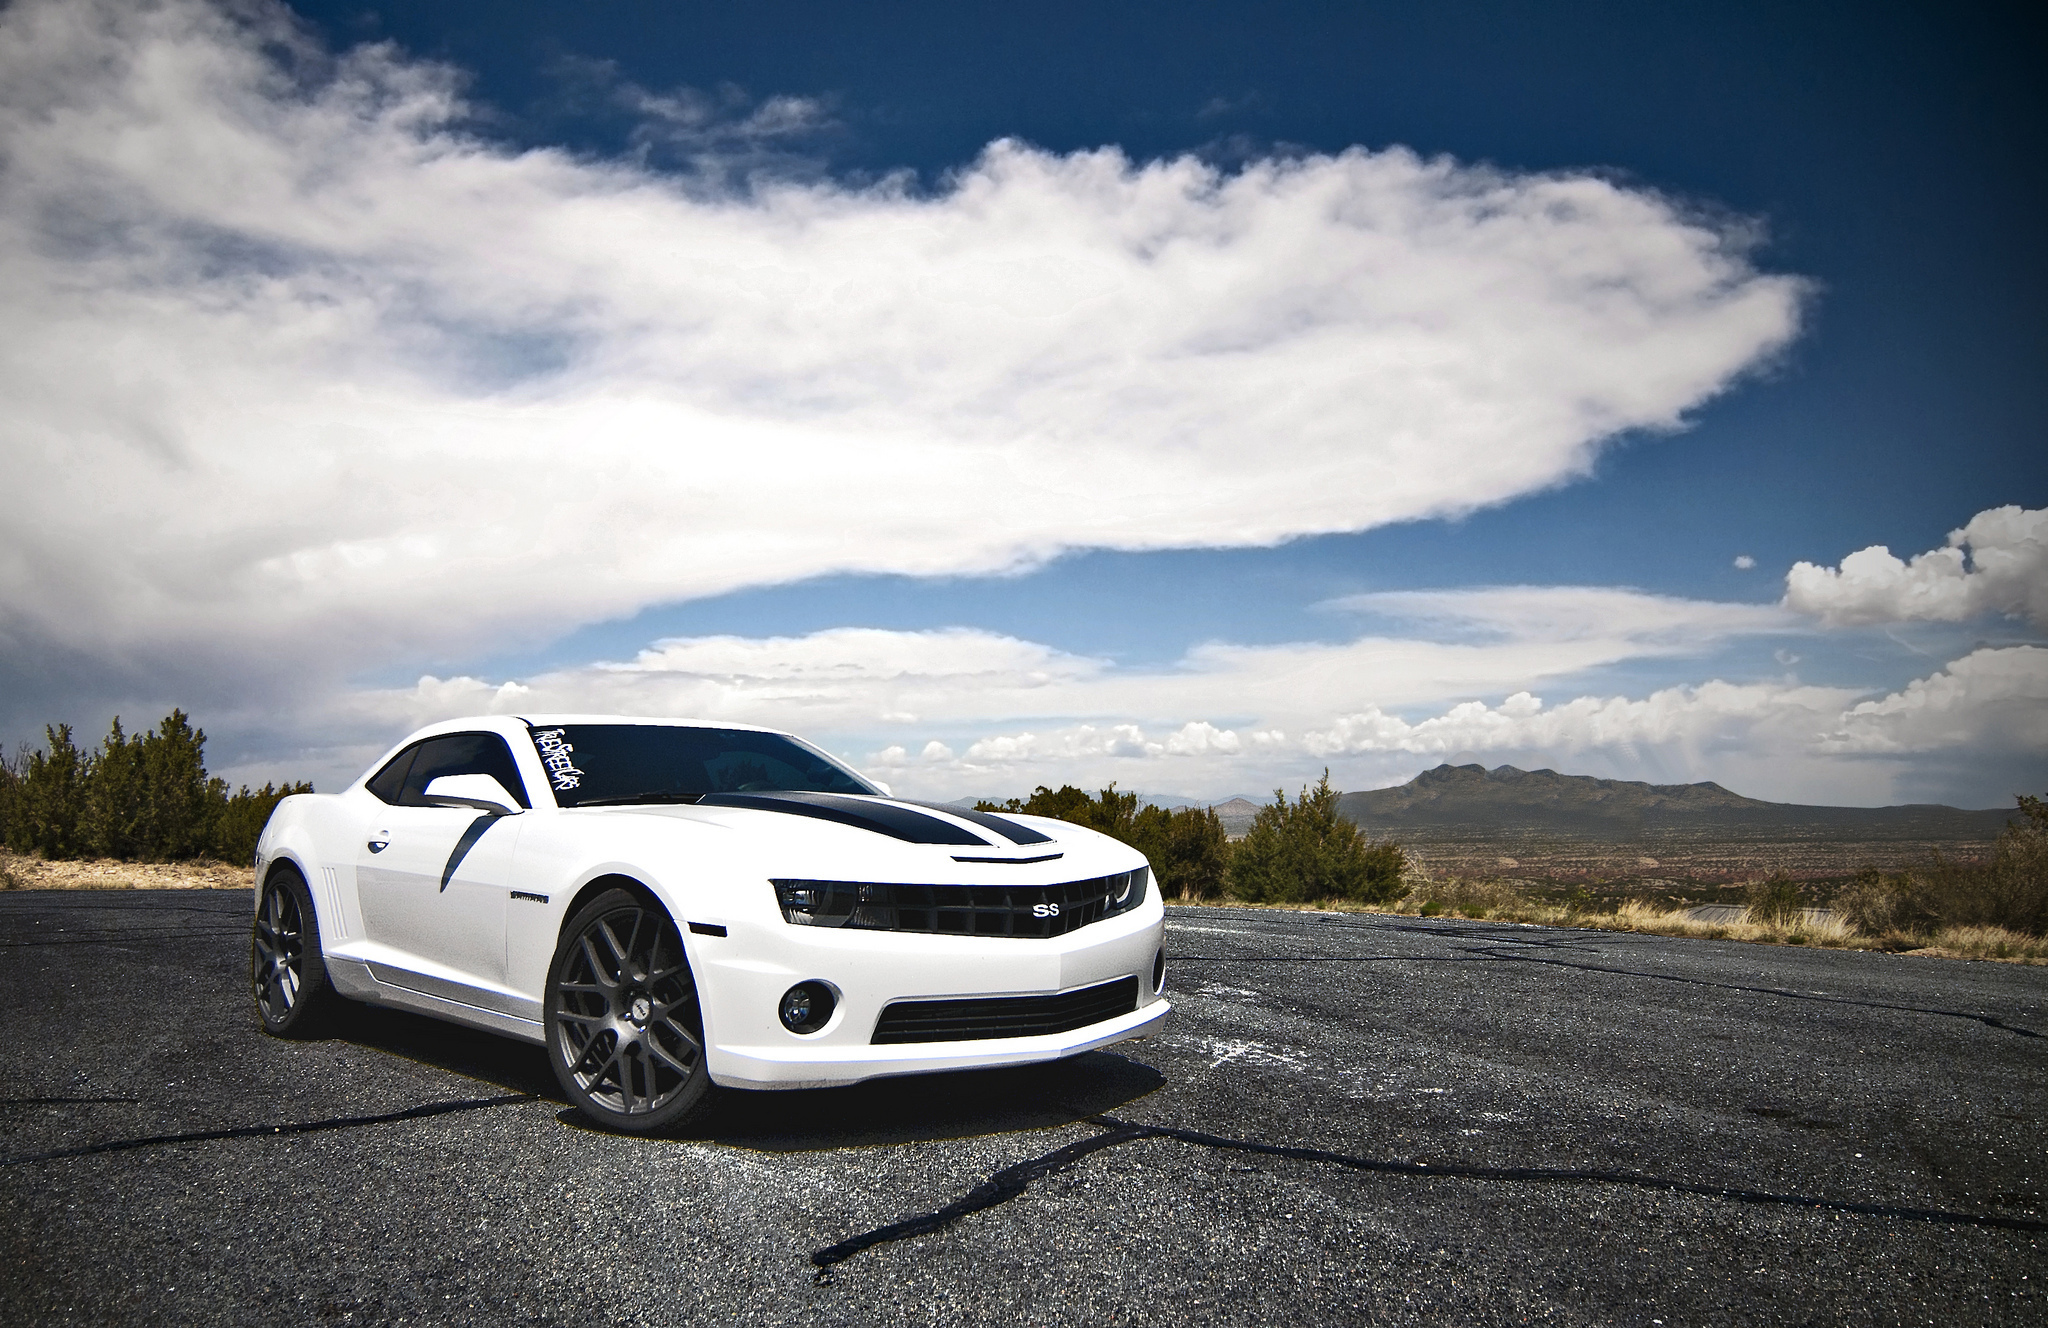 Image: Chevrolet, Camaro, white, day, clouds, road, mountains, nature